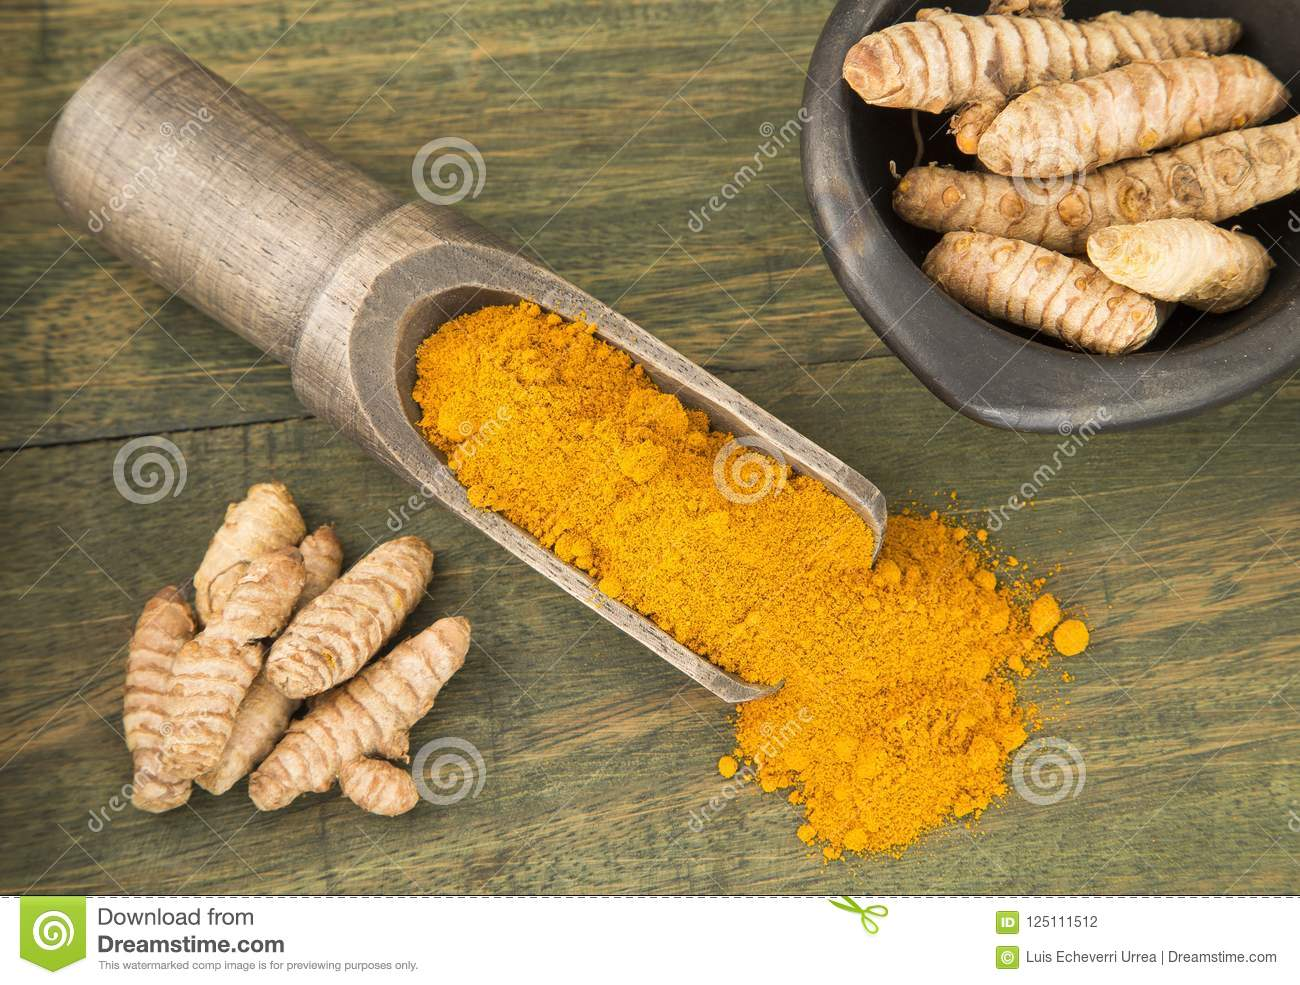 turmeric-spice-used-alternative-medicine-curcuma-longa-fresh-organic-root-powder-top-view-125111512.jpg